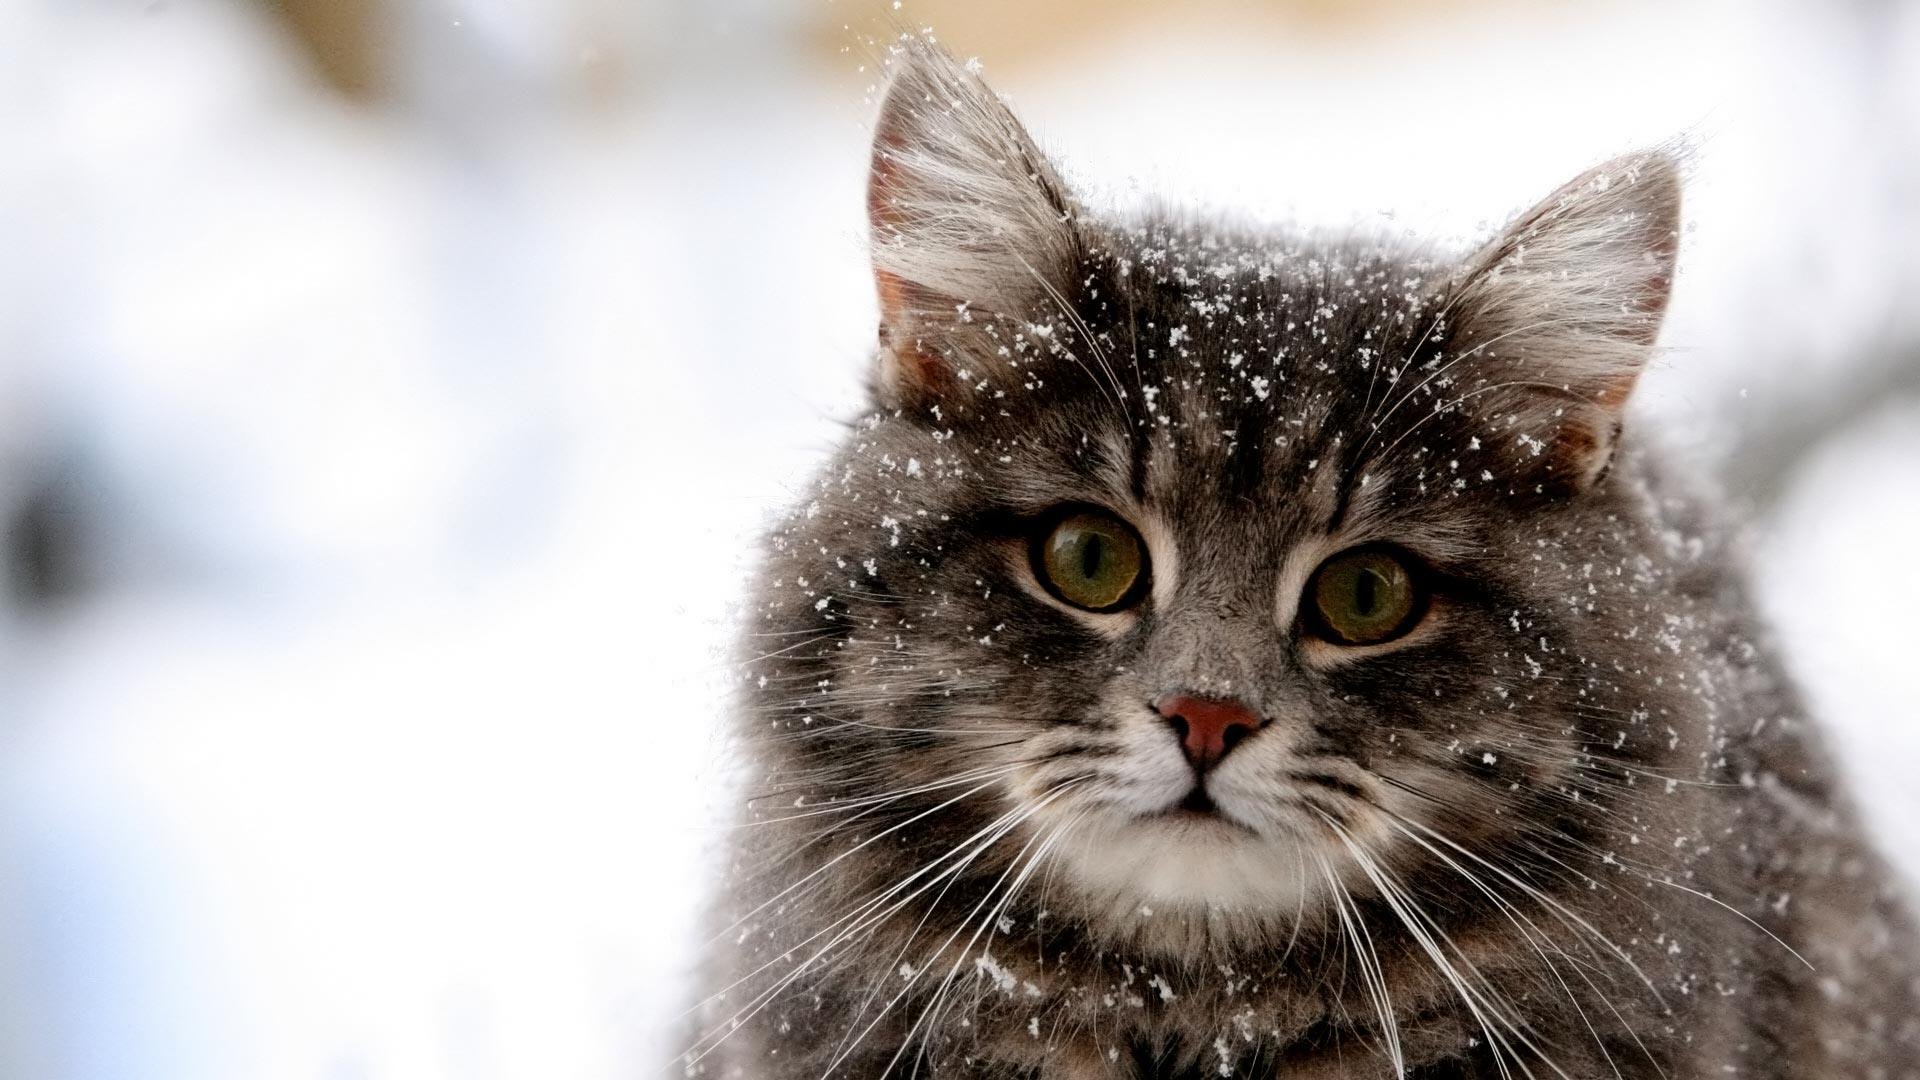 Cute Cat Winter Snow HD Wallpaper Cute Cat Winter Snow 1920x1080